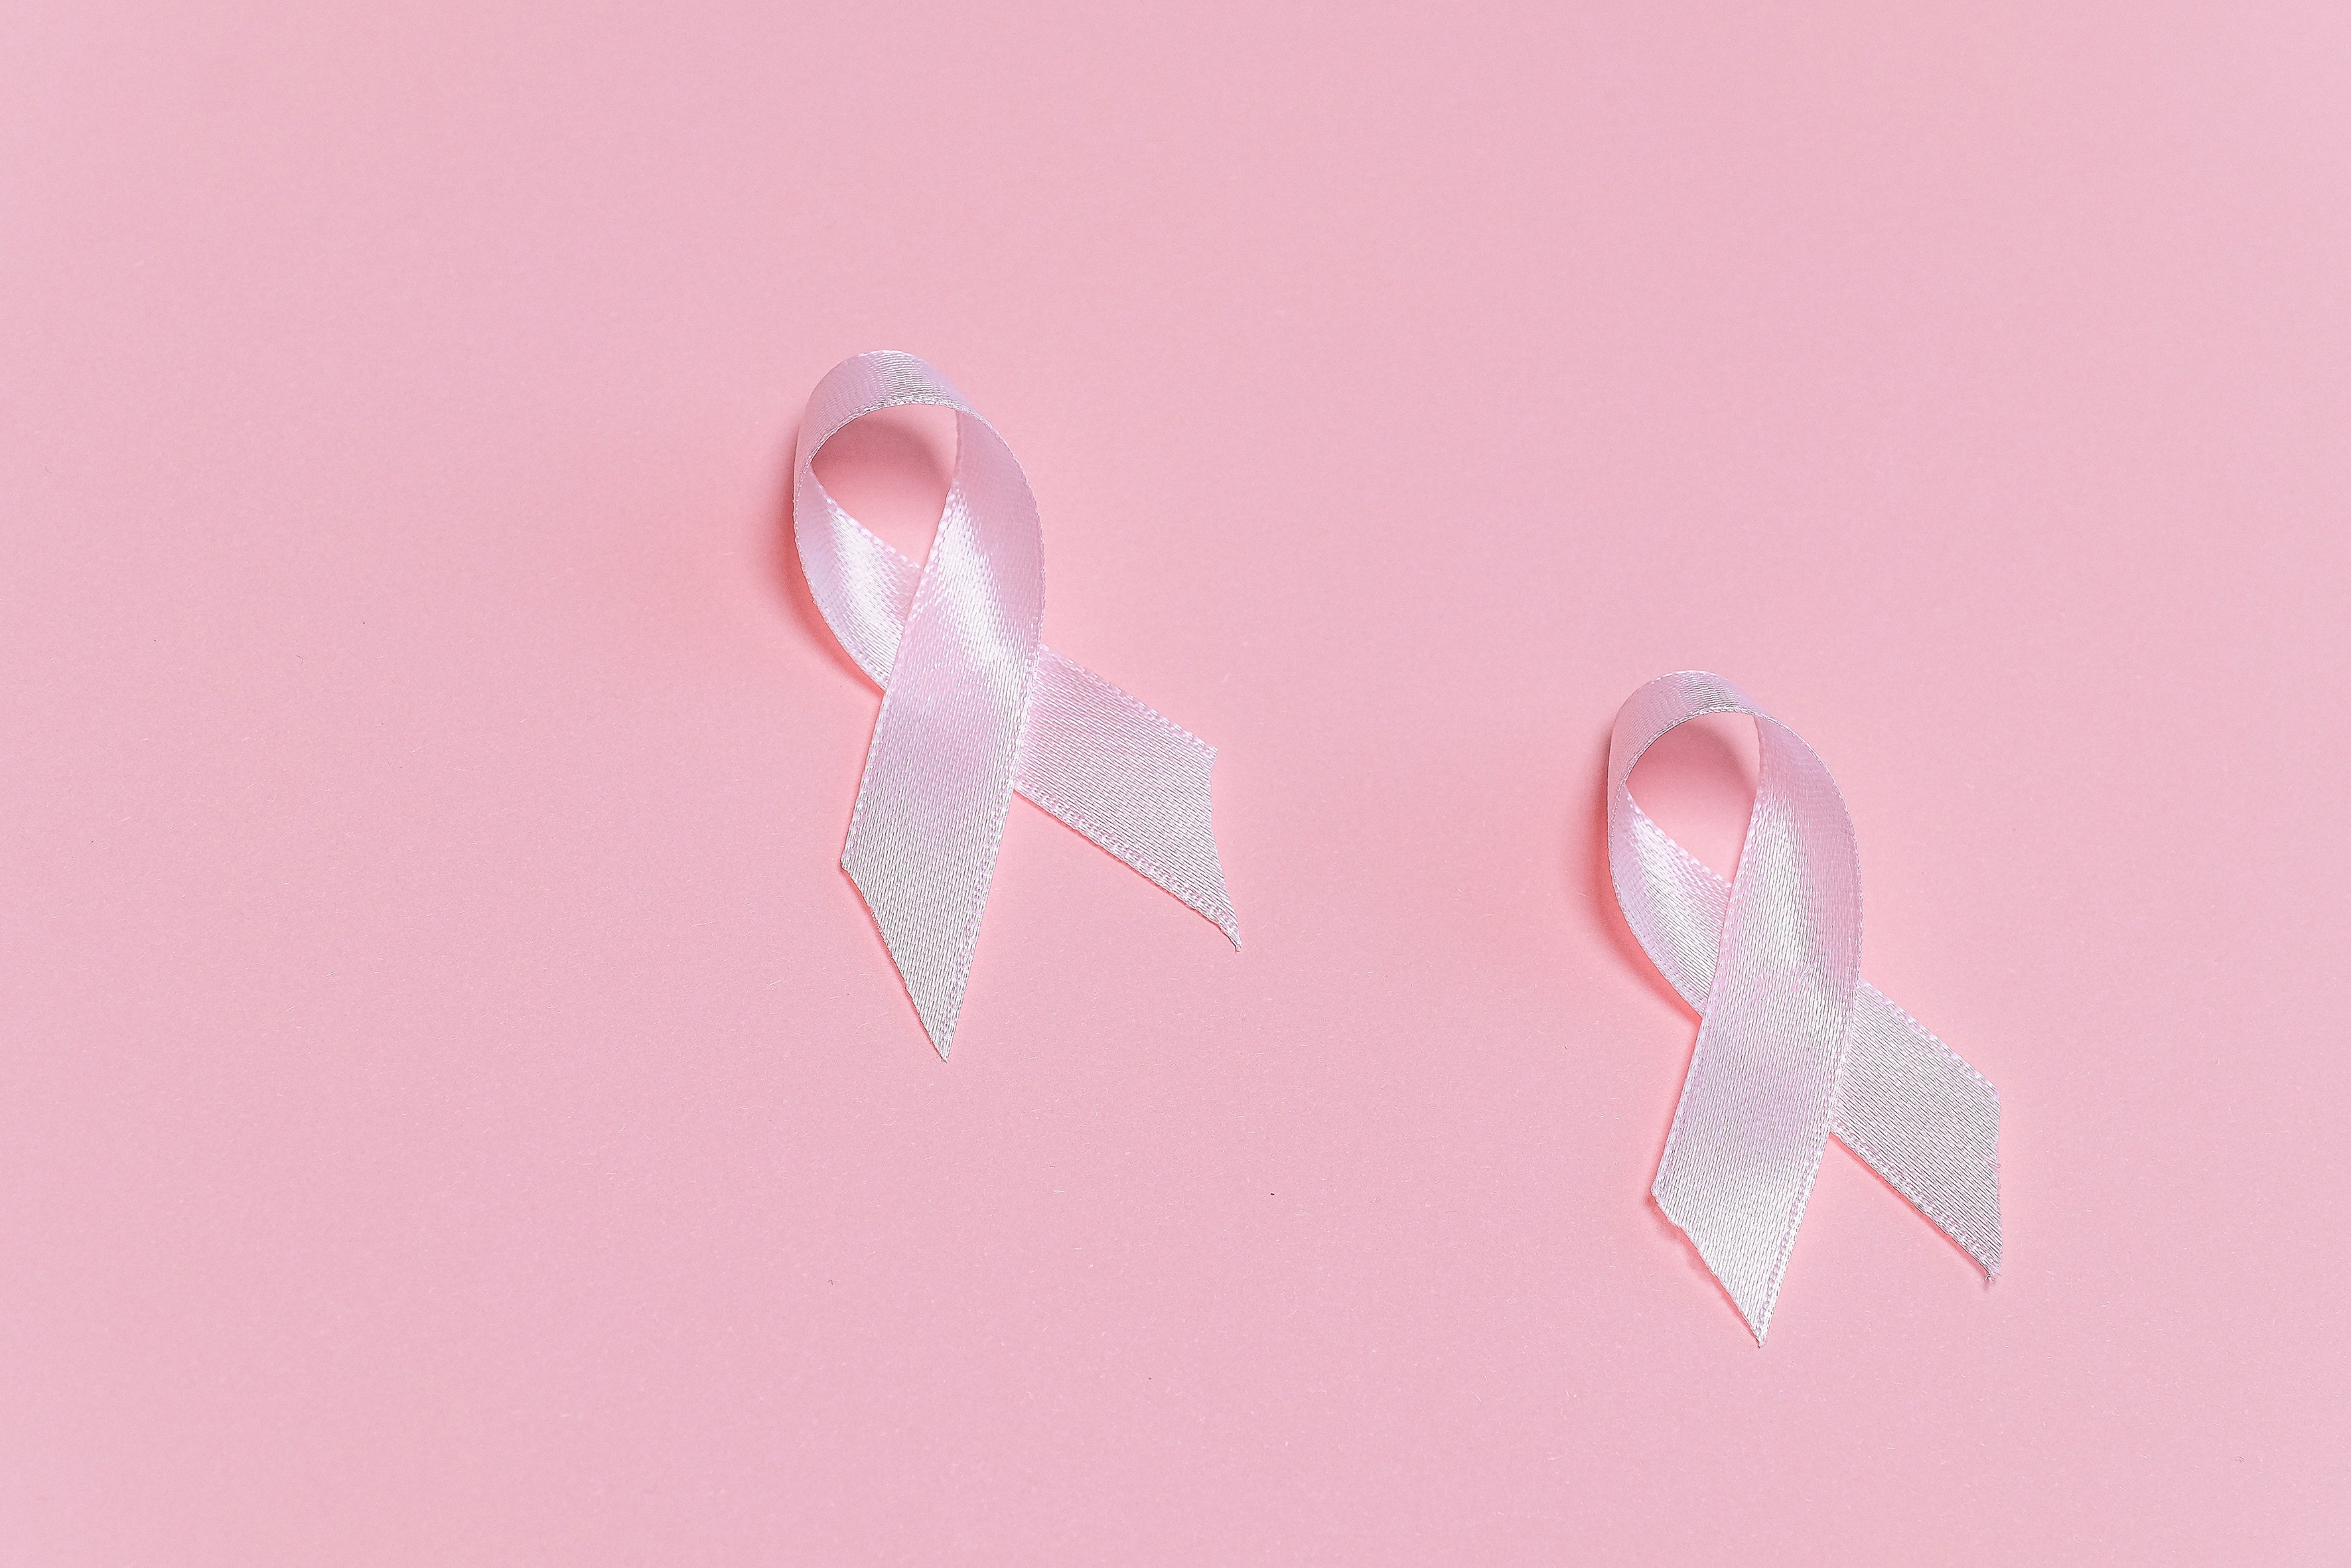 BREAST CANCER AWARENESS AND SELF EXAMINATION AT HOME